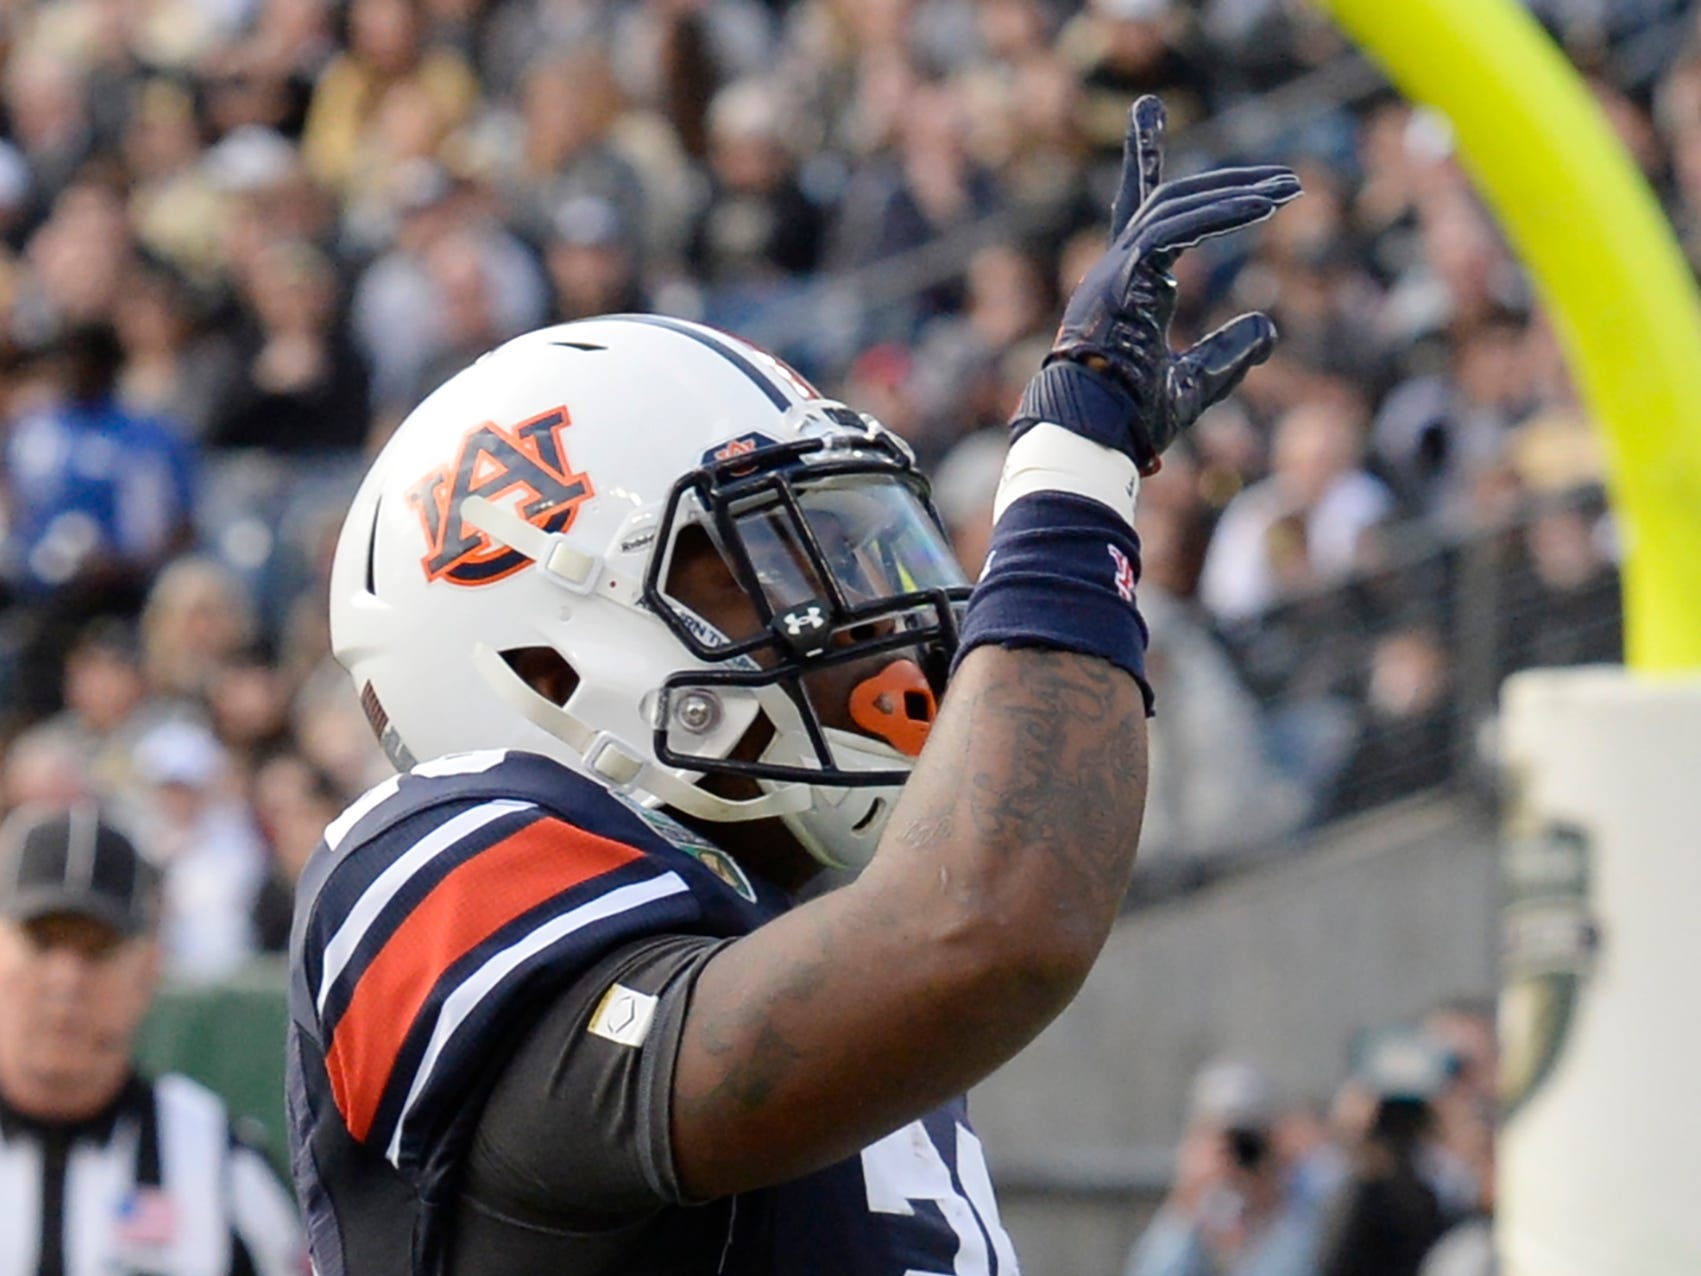 Auburn running back JaTarvious Whitlow (28) celebrates his second touchdown of the first quarter of the Music City Bowl NCAA college football game Friday, Dec. 28, 2018, at Nissan Stadium in Nashville, Tenn.